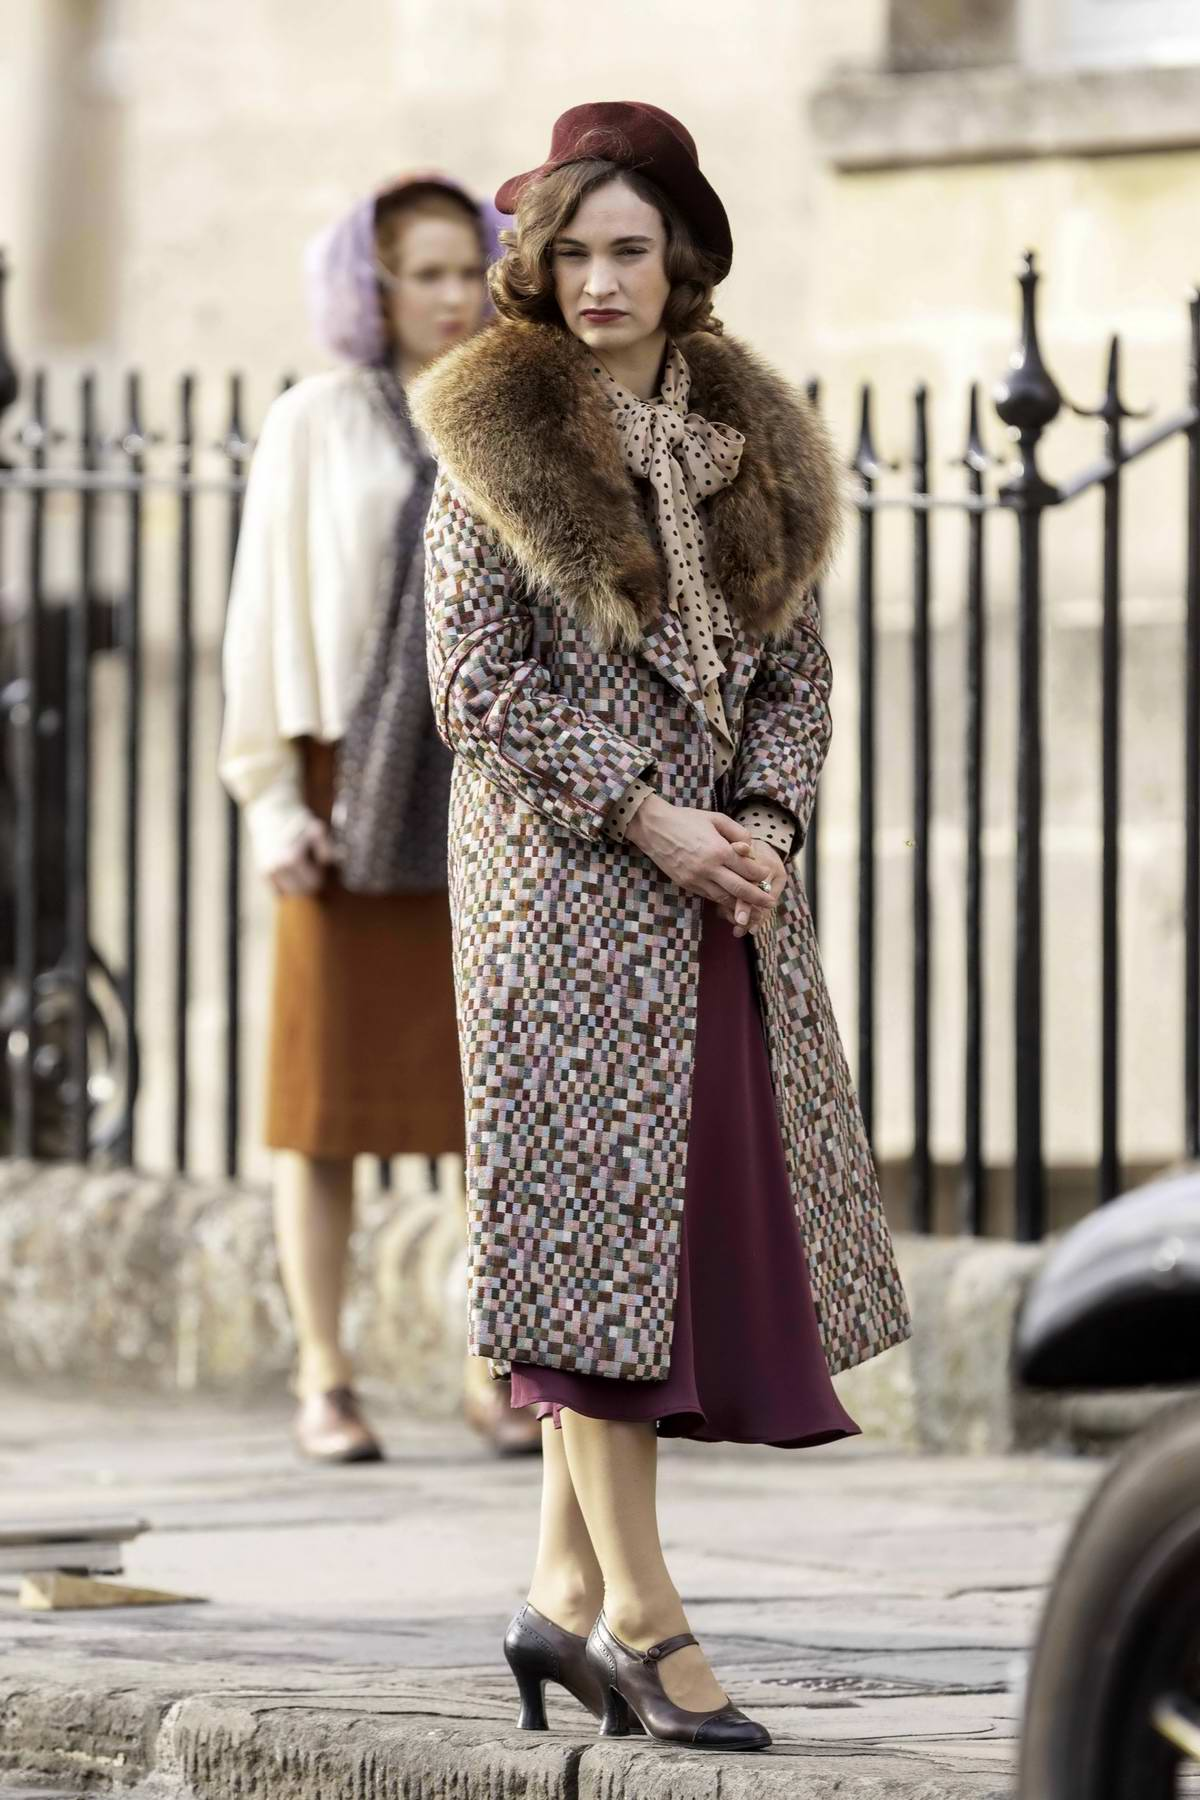 Lily James seen filming scenes for the new BBC romantic comedy drama 'The Pursuit Of Love' in Bath, Somerset, UK